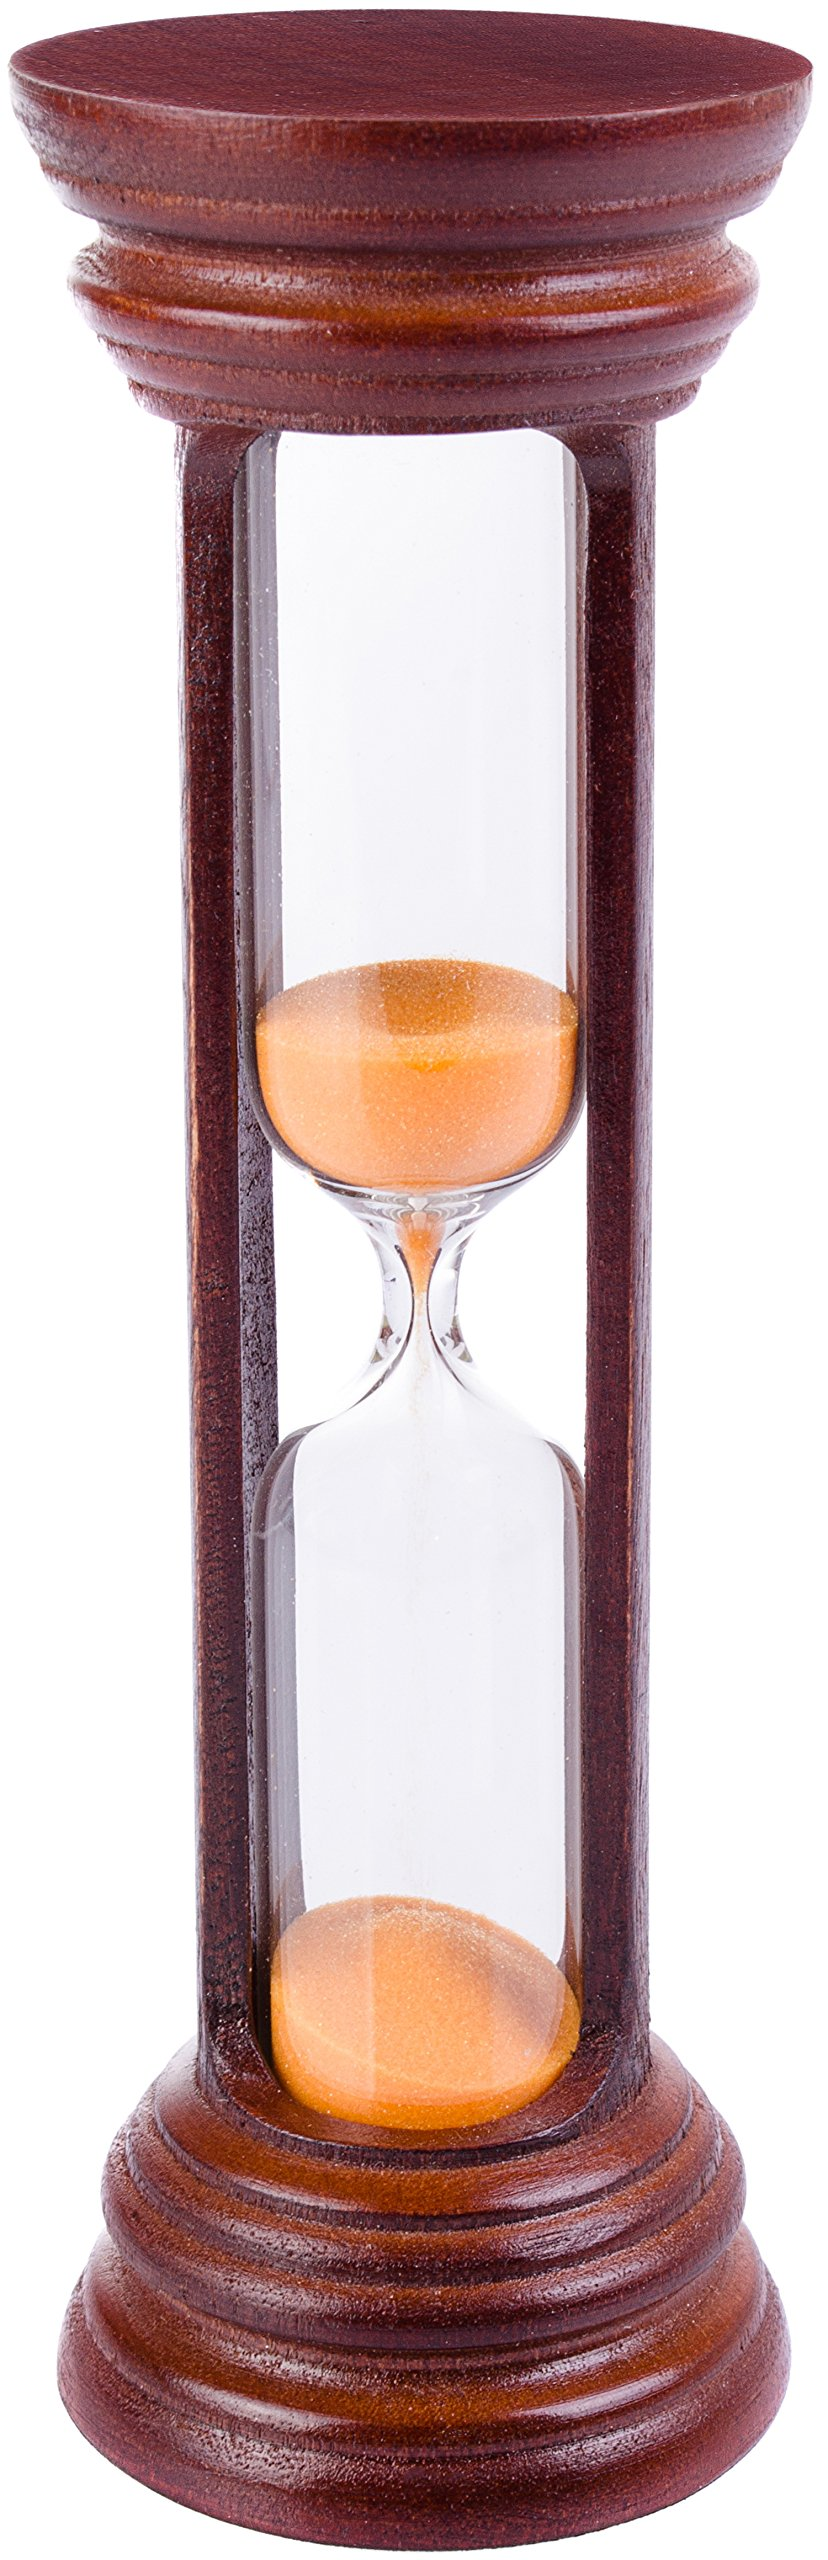 Sand Hourglass Timer – Best Vintage or Antique Style Hour Glass with World-Class Craftsmanship & High Accuracy – Ideal for Gifting, Décor or Use as 5 Minutes Sand Clock